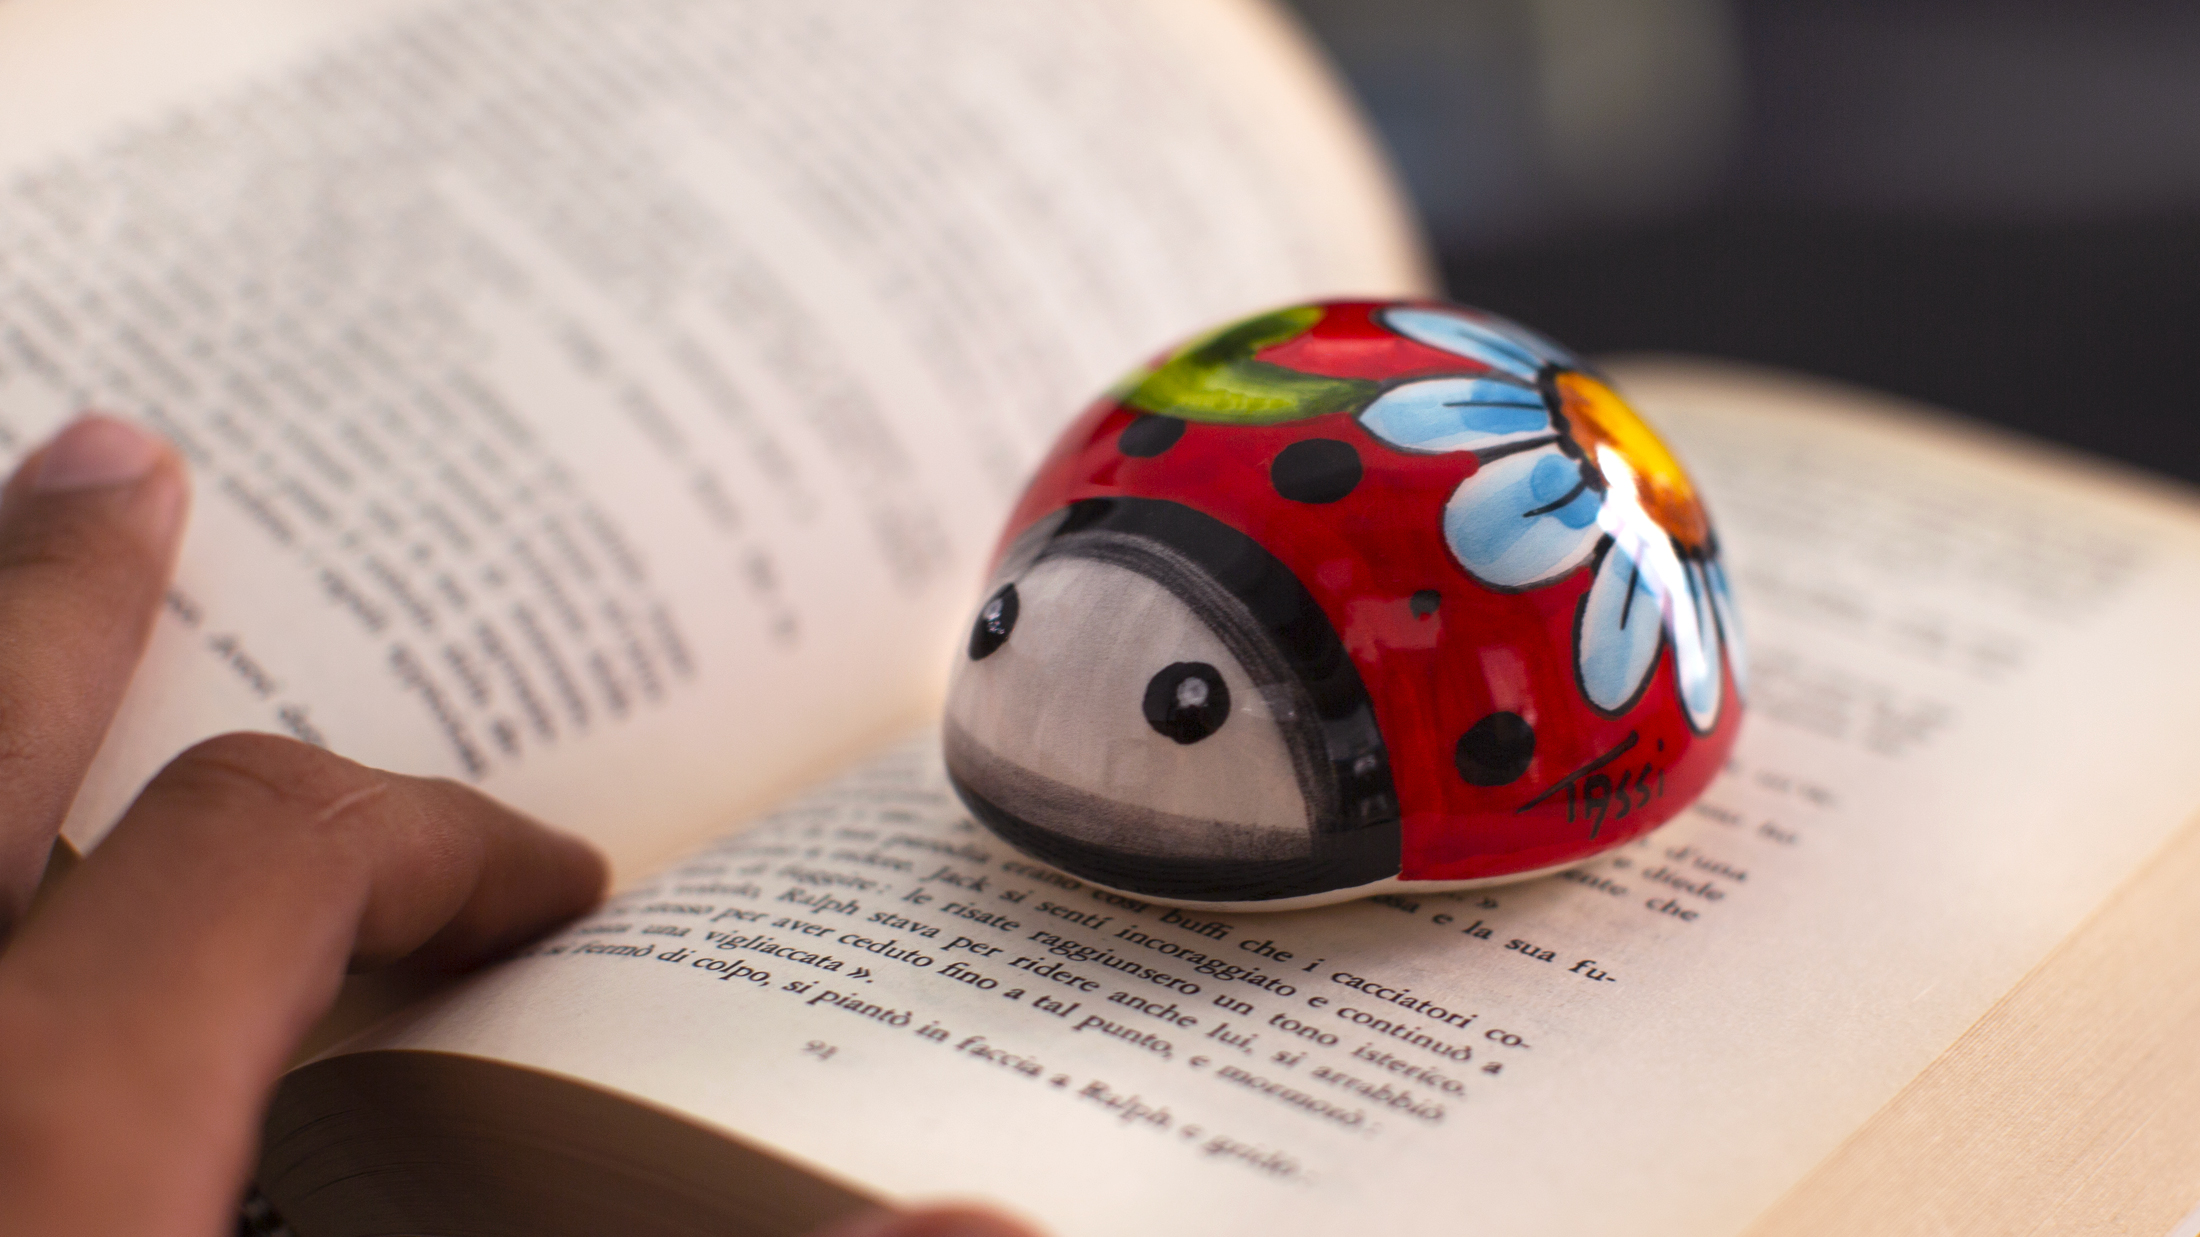 Ceramic Ladybug Figurine Hand Painted And Finished To The Smallest Details With Love In Italy